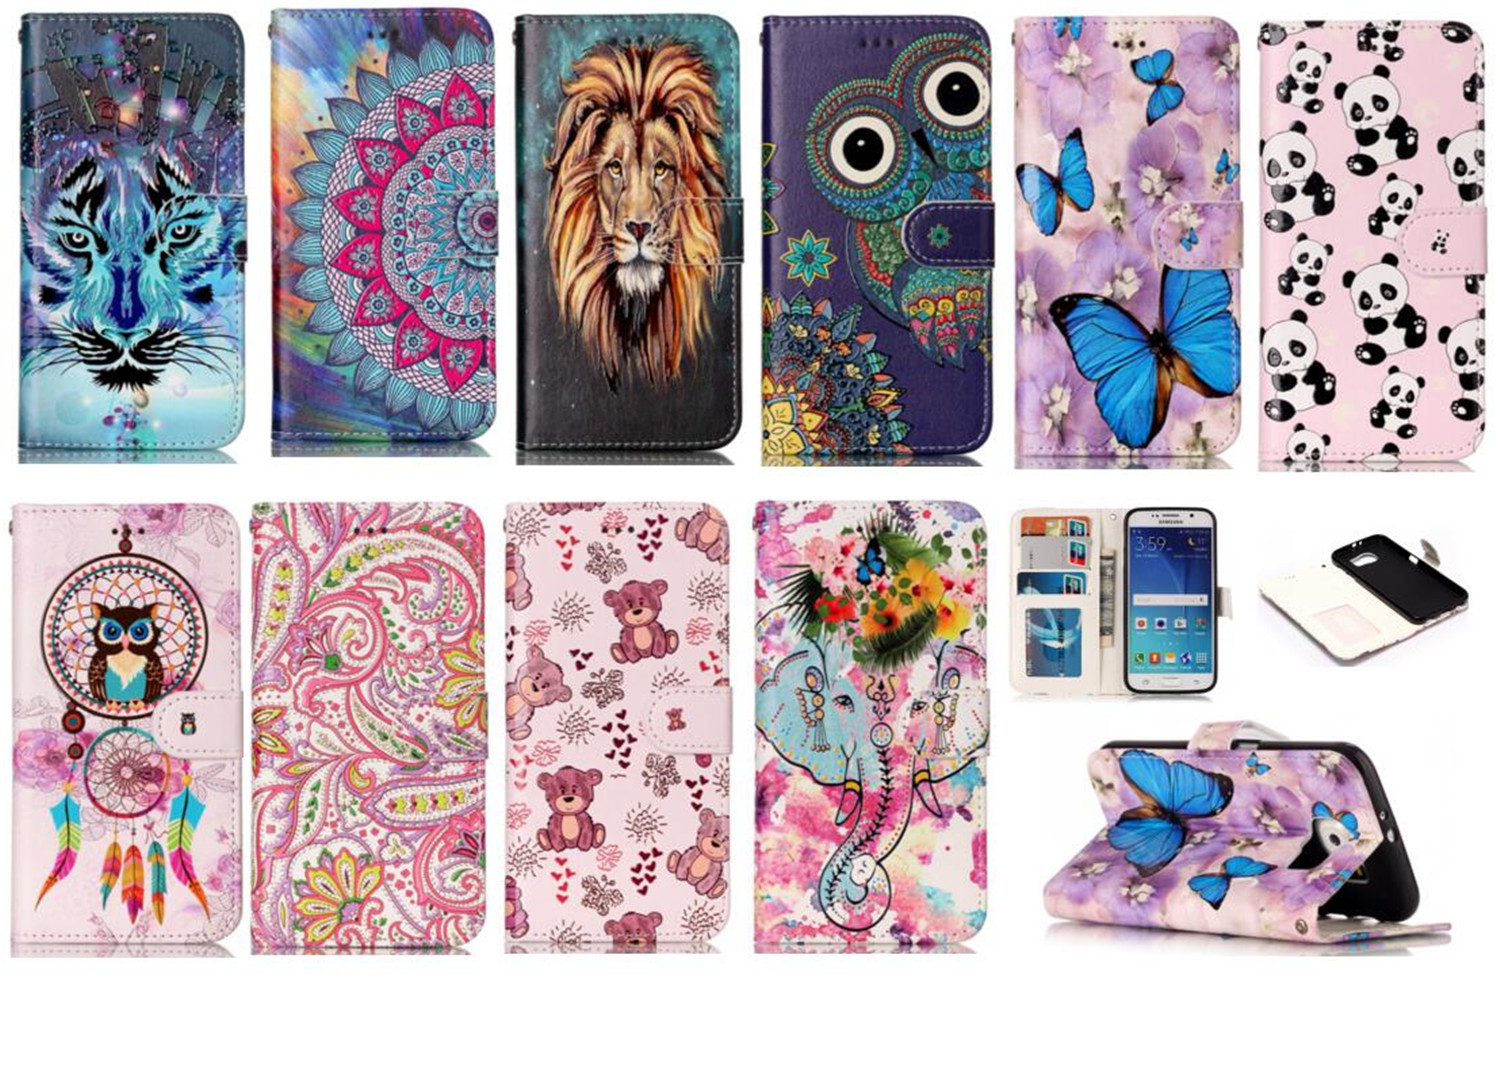 Case for Samsung Galaxy S6 PU+TPU Case for Samsung S6 SM-G9200 G9208/SS G9209 G920FD/K/0L/I/S/A/T/R7 Embossed Varnish phone bag